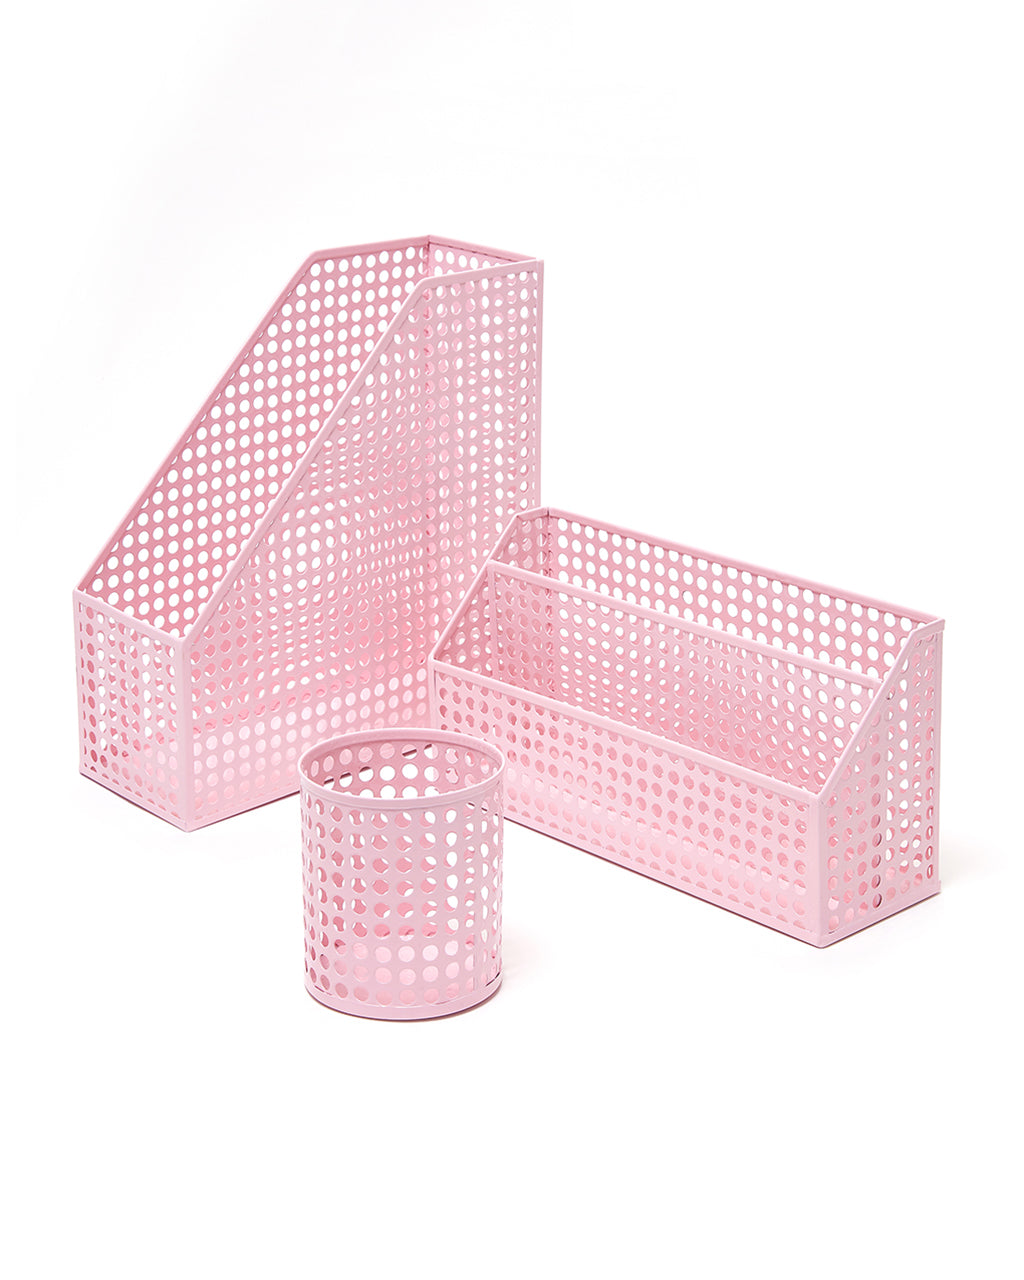 design decorate office all desk accessories pink nice